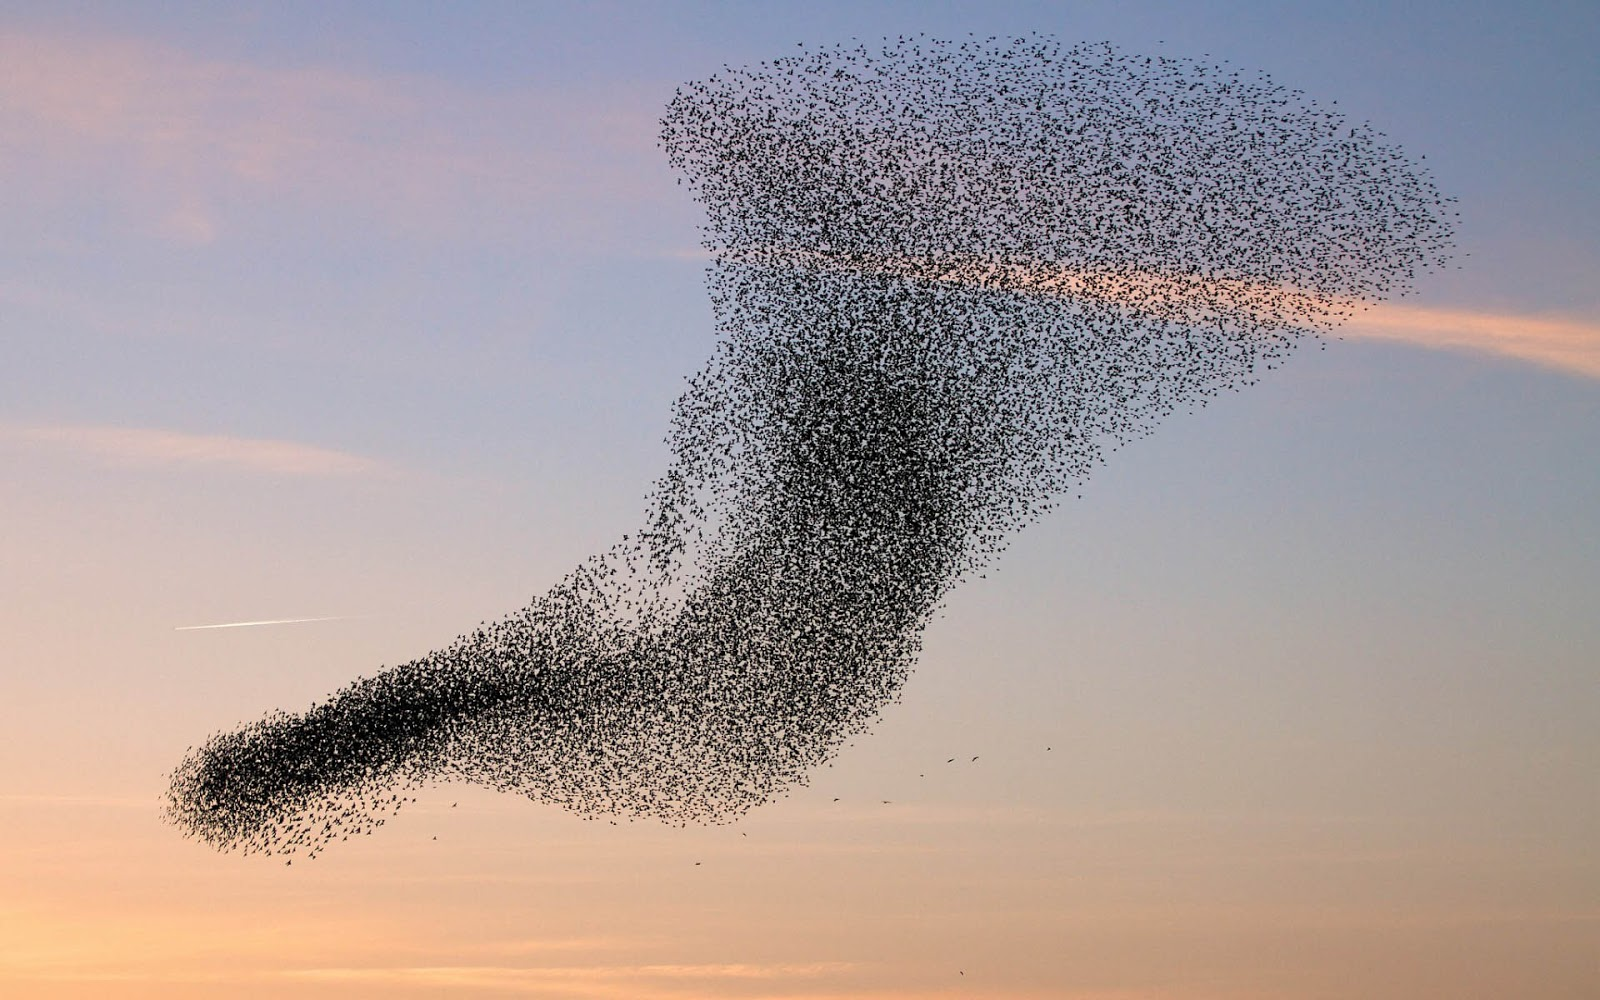 https://www.howitworksdaily.com/why-do-birds-flock-together/